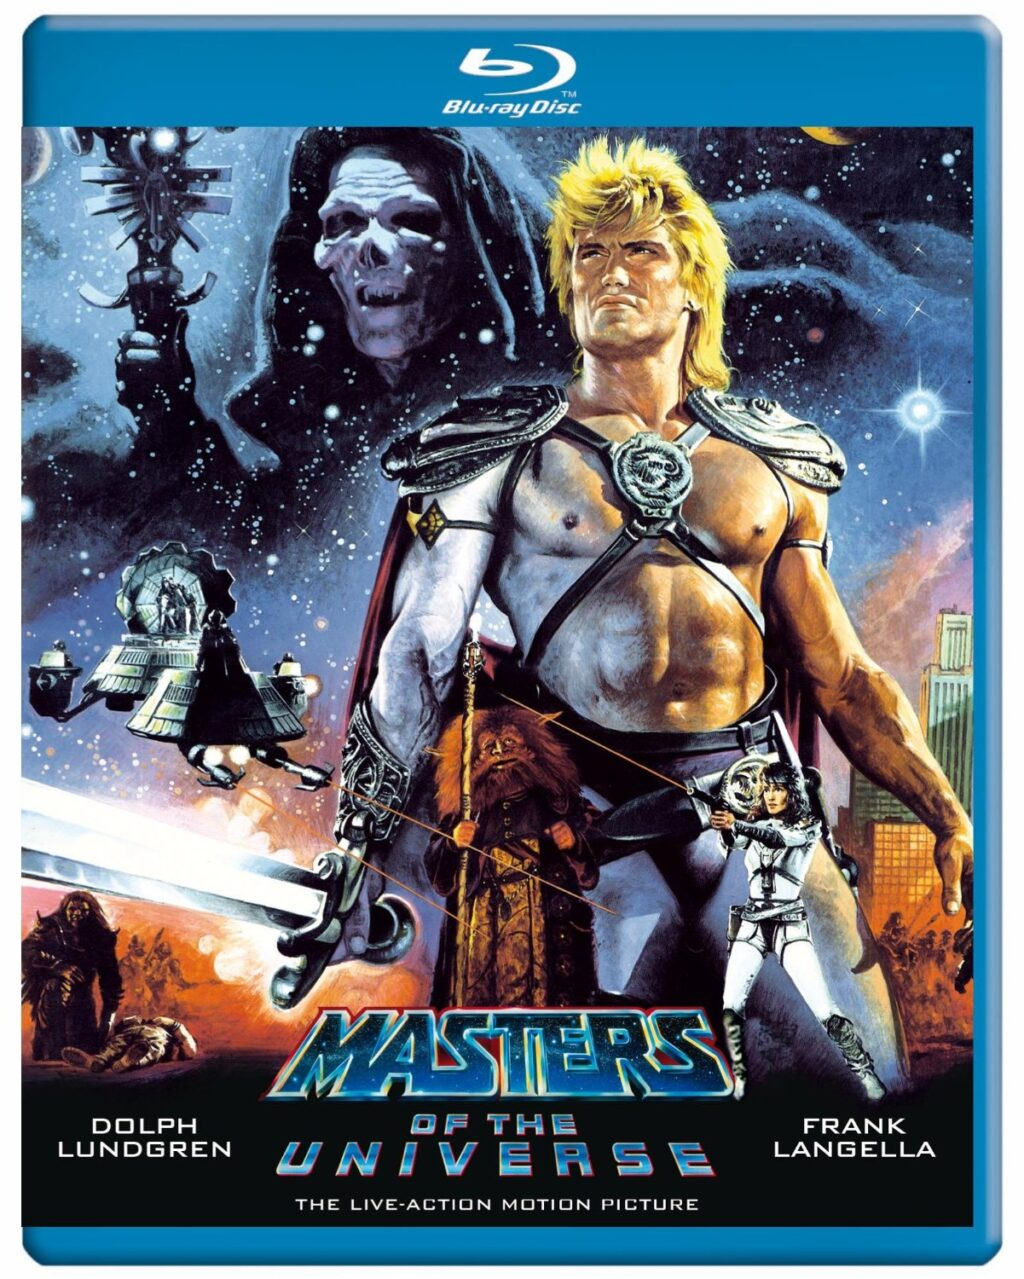 Masters of the Universe bluray 1024x1279 - This Day in Horror History: MASTERS OF THE UNIVERSE was released in 1987